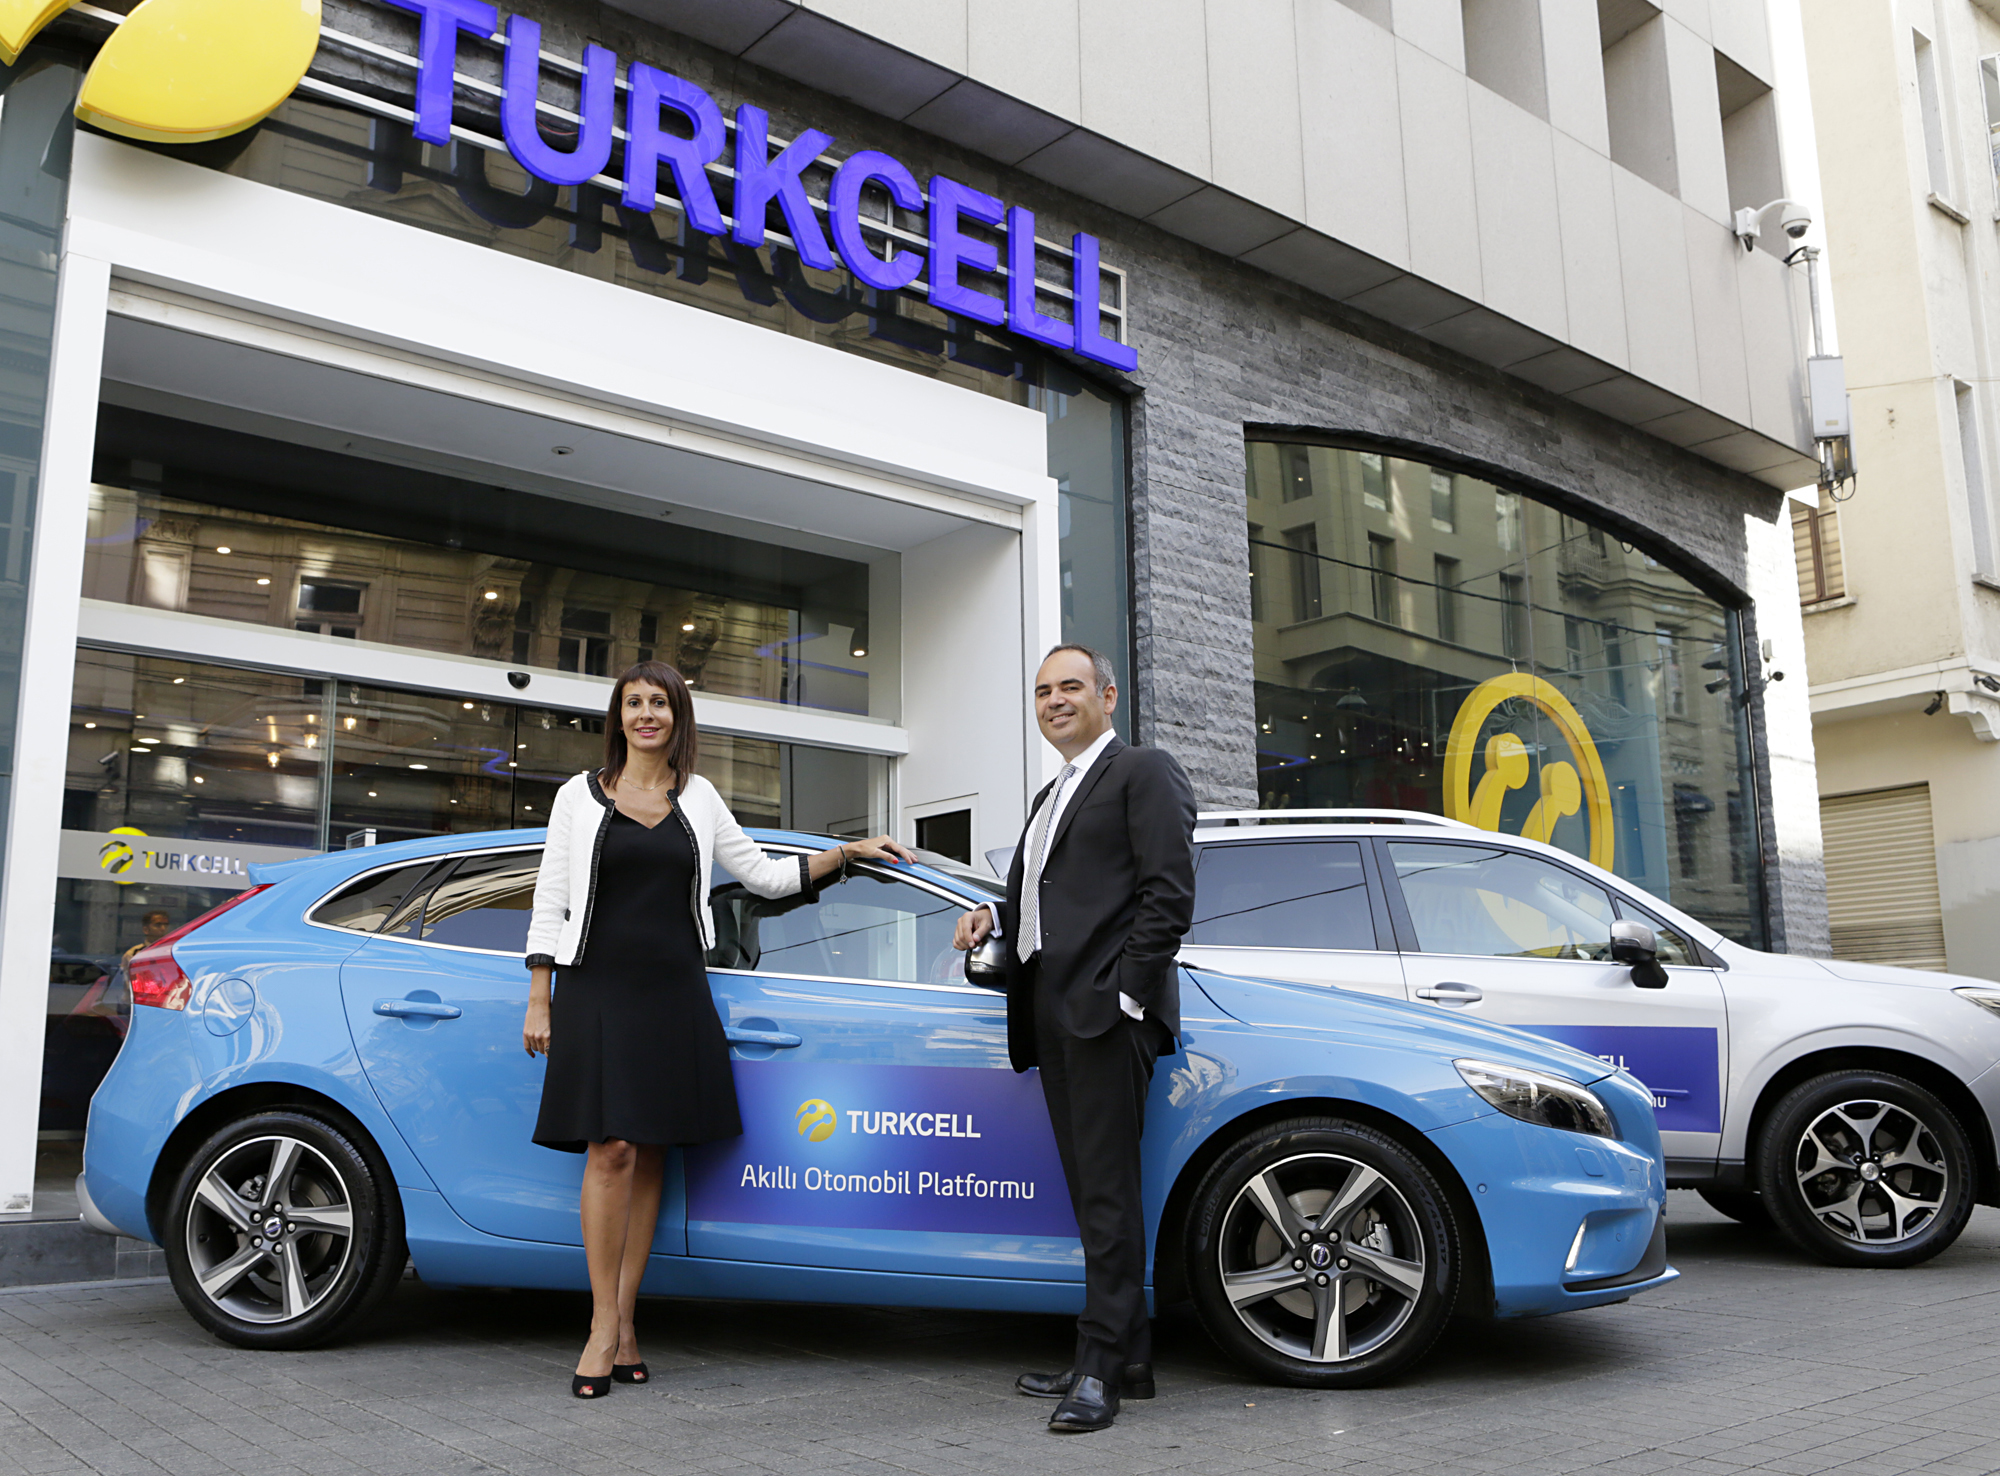 """""""Turkcell's Chief Corporate Business Officer Selen Kocabas and Chief Corporate Marketing Officer Yigit Kulabas introduced Turkcell's Connected Car Platform with a press conference at Turkcell Headquarters in Istanbul."""" (Photo: Business Wire)"""